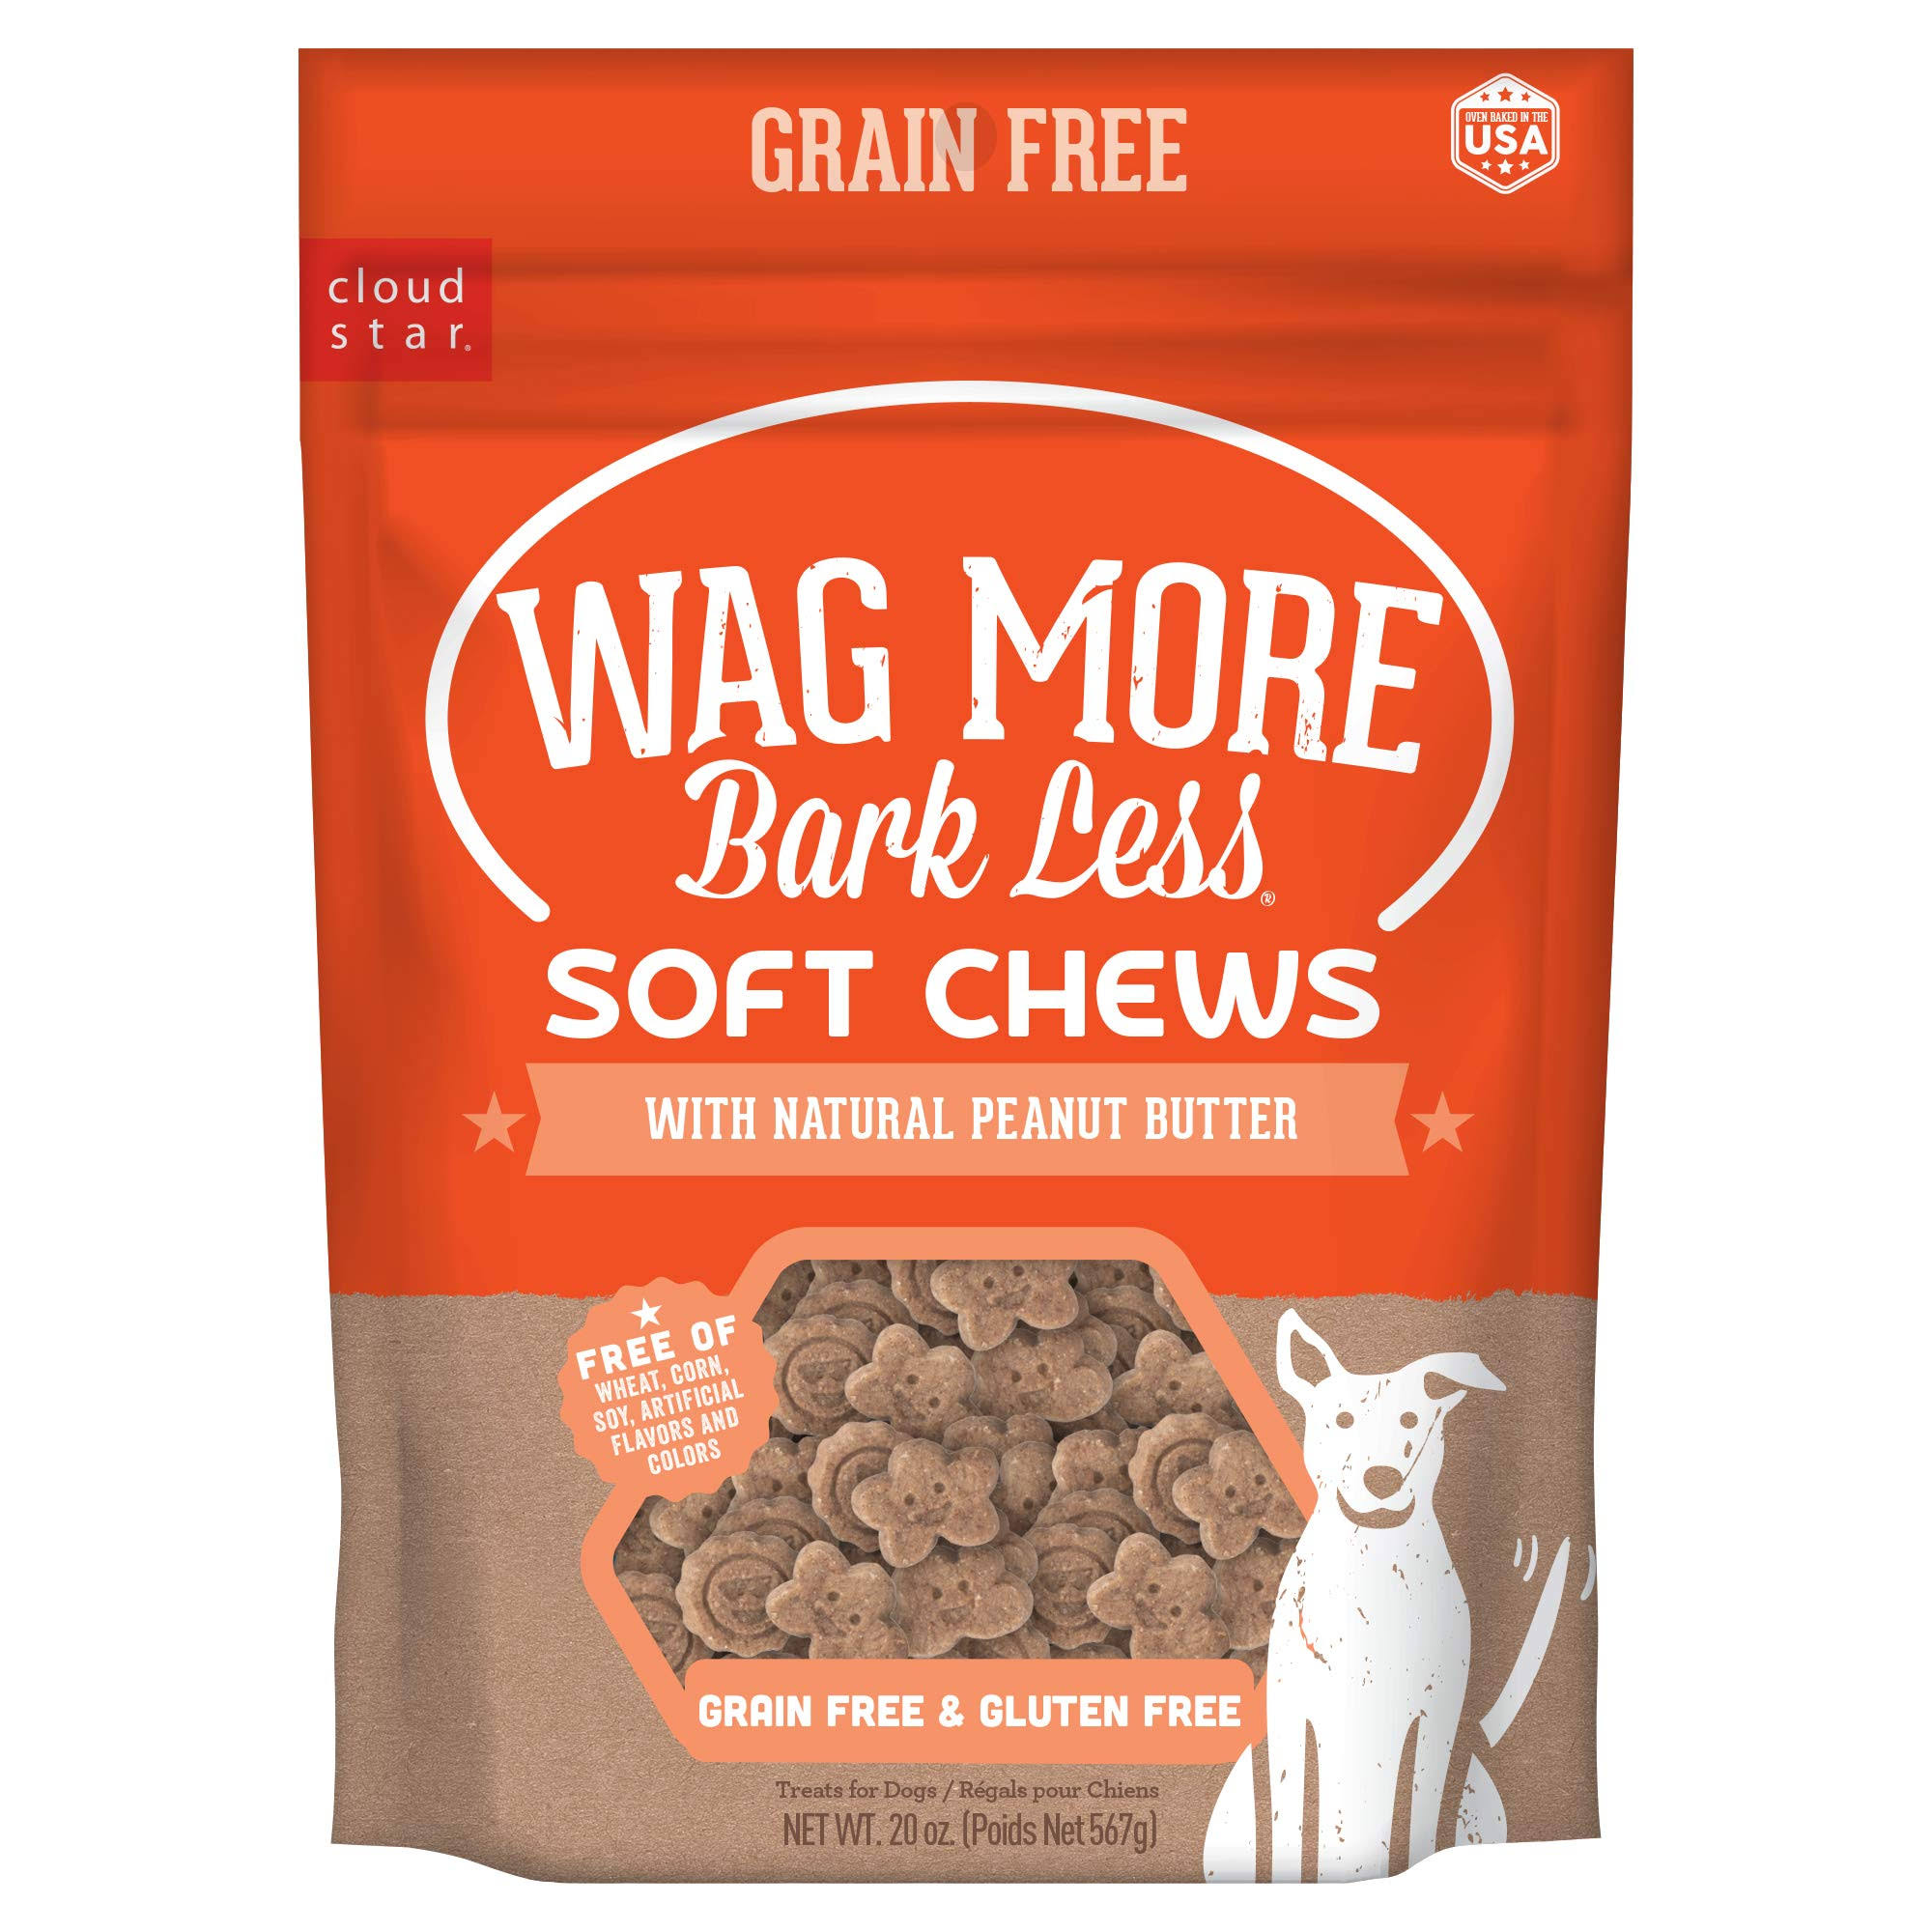 Wagmore 25072913 20 oz Grain Free Soft & Chewy Peanut Butter Dog Food